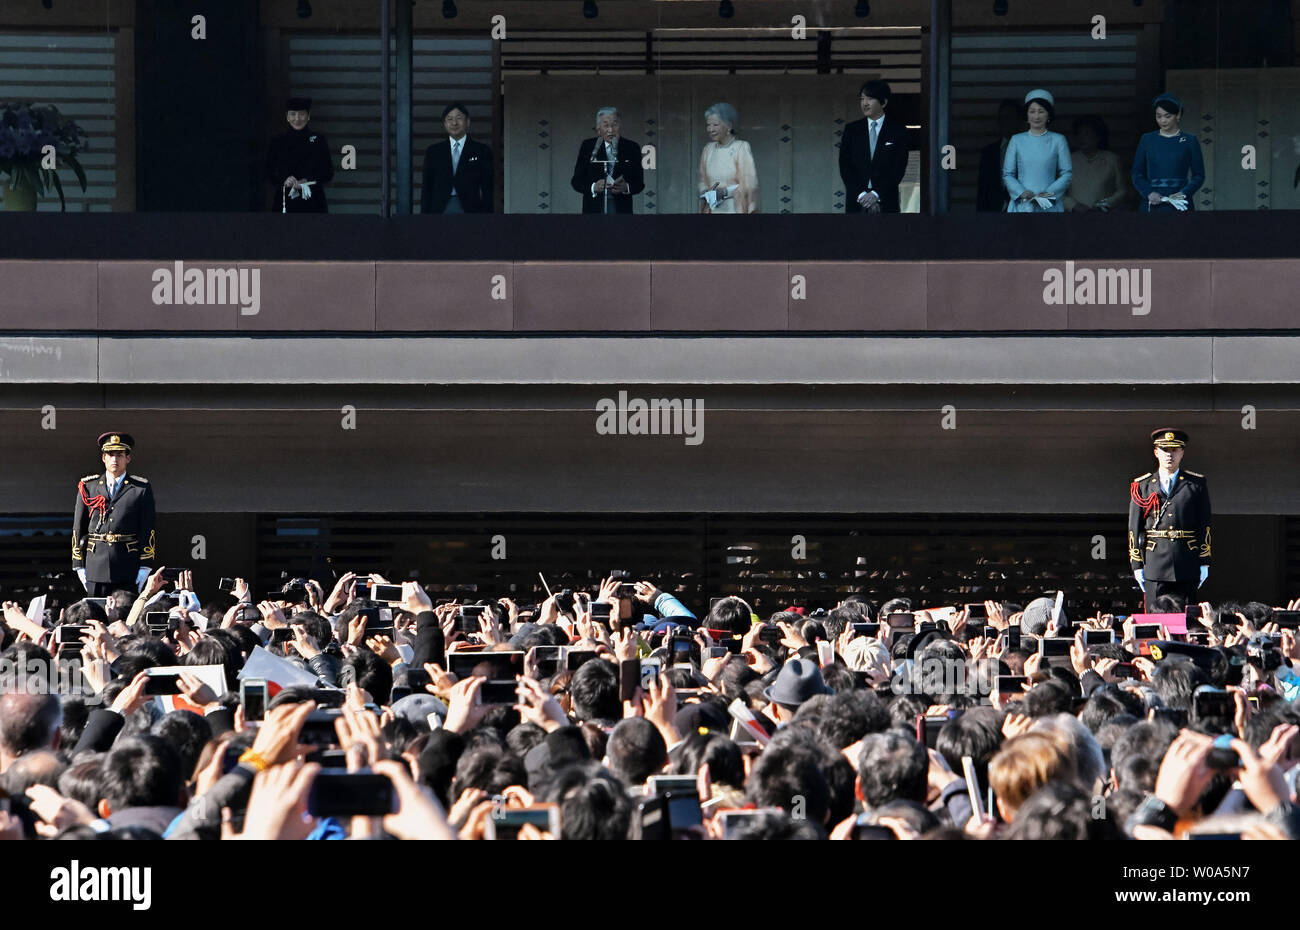 Japan's Emperor Akihito(L3) speaks to well-wishers during his Majesty's 84th birthday greeting at the East Plaza, Imperial Palace in Tokyo, Japan, on December 23, 2017.     Photo by Keizo Mori/UPI - Stock Image